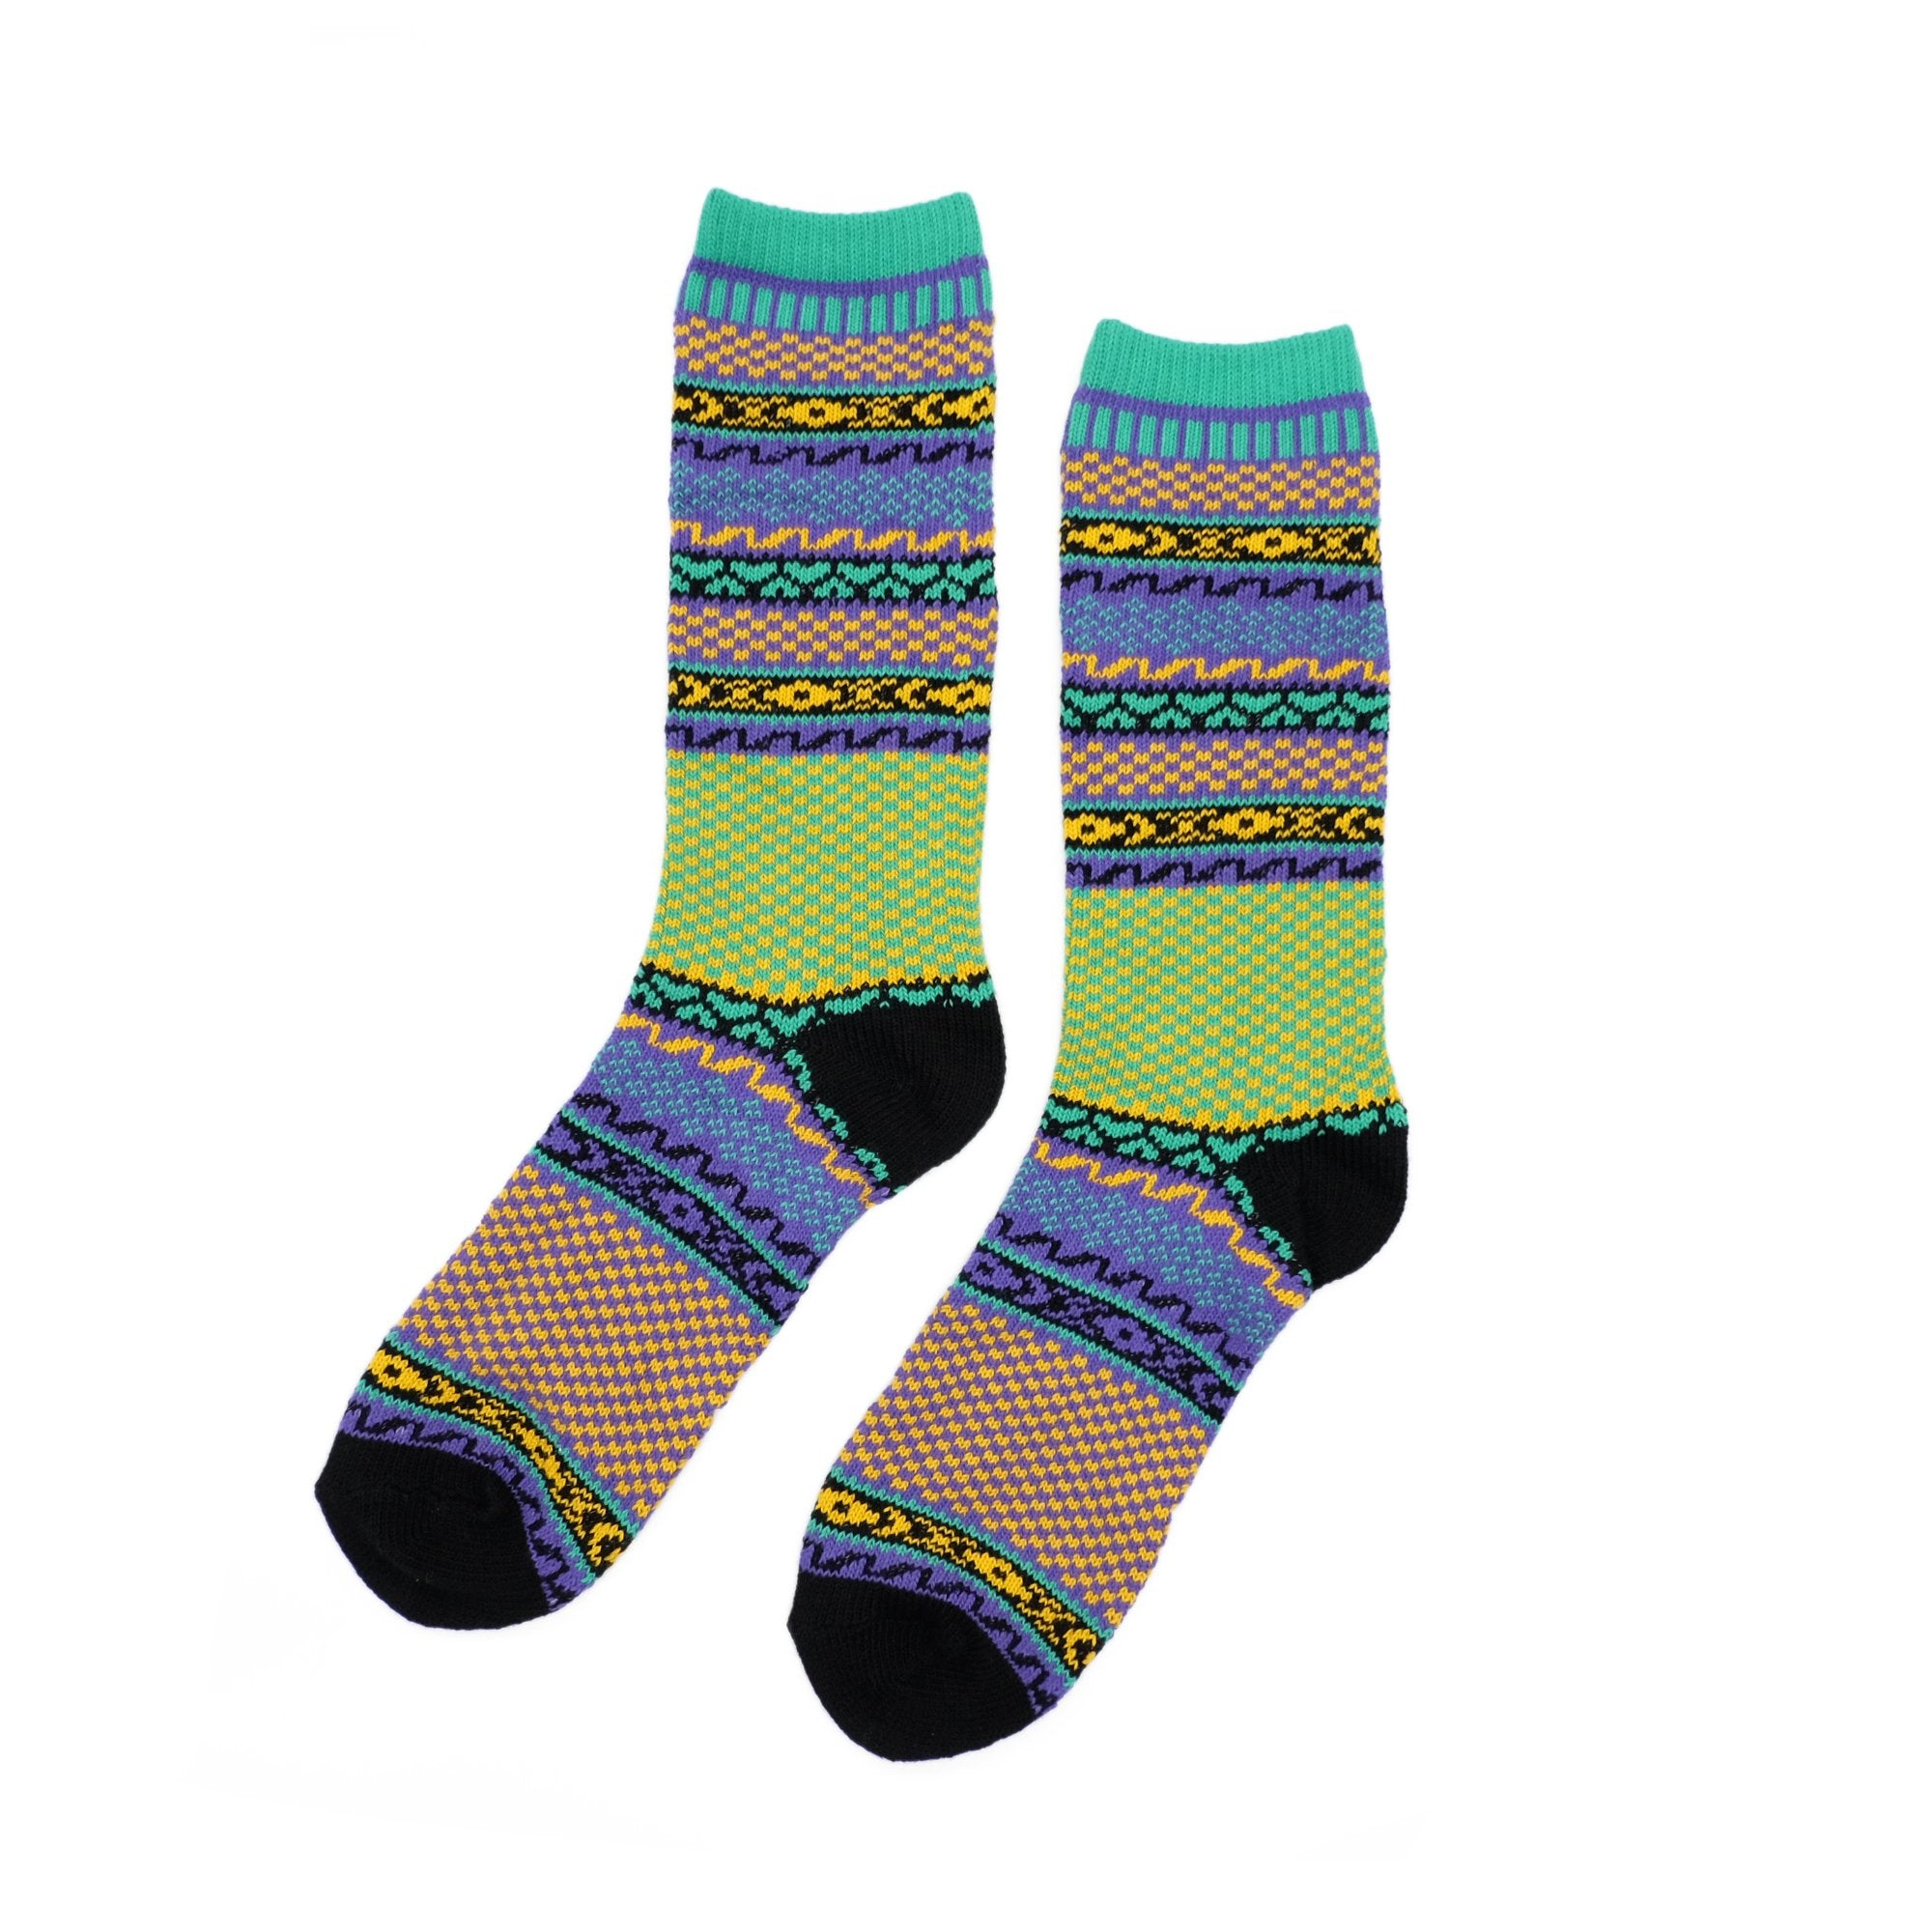 Aoi Tribal Socks